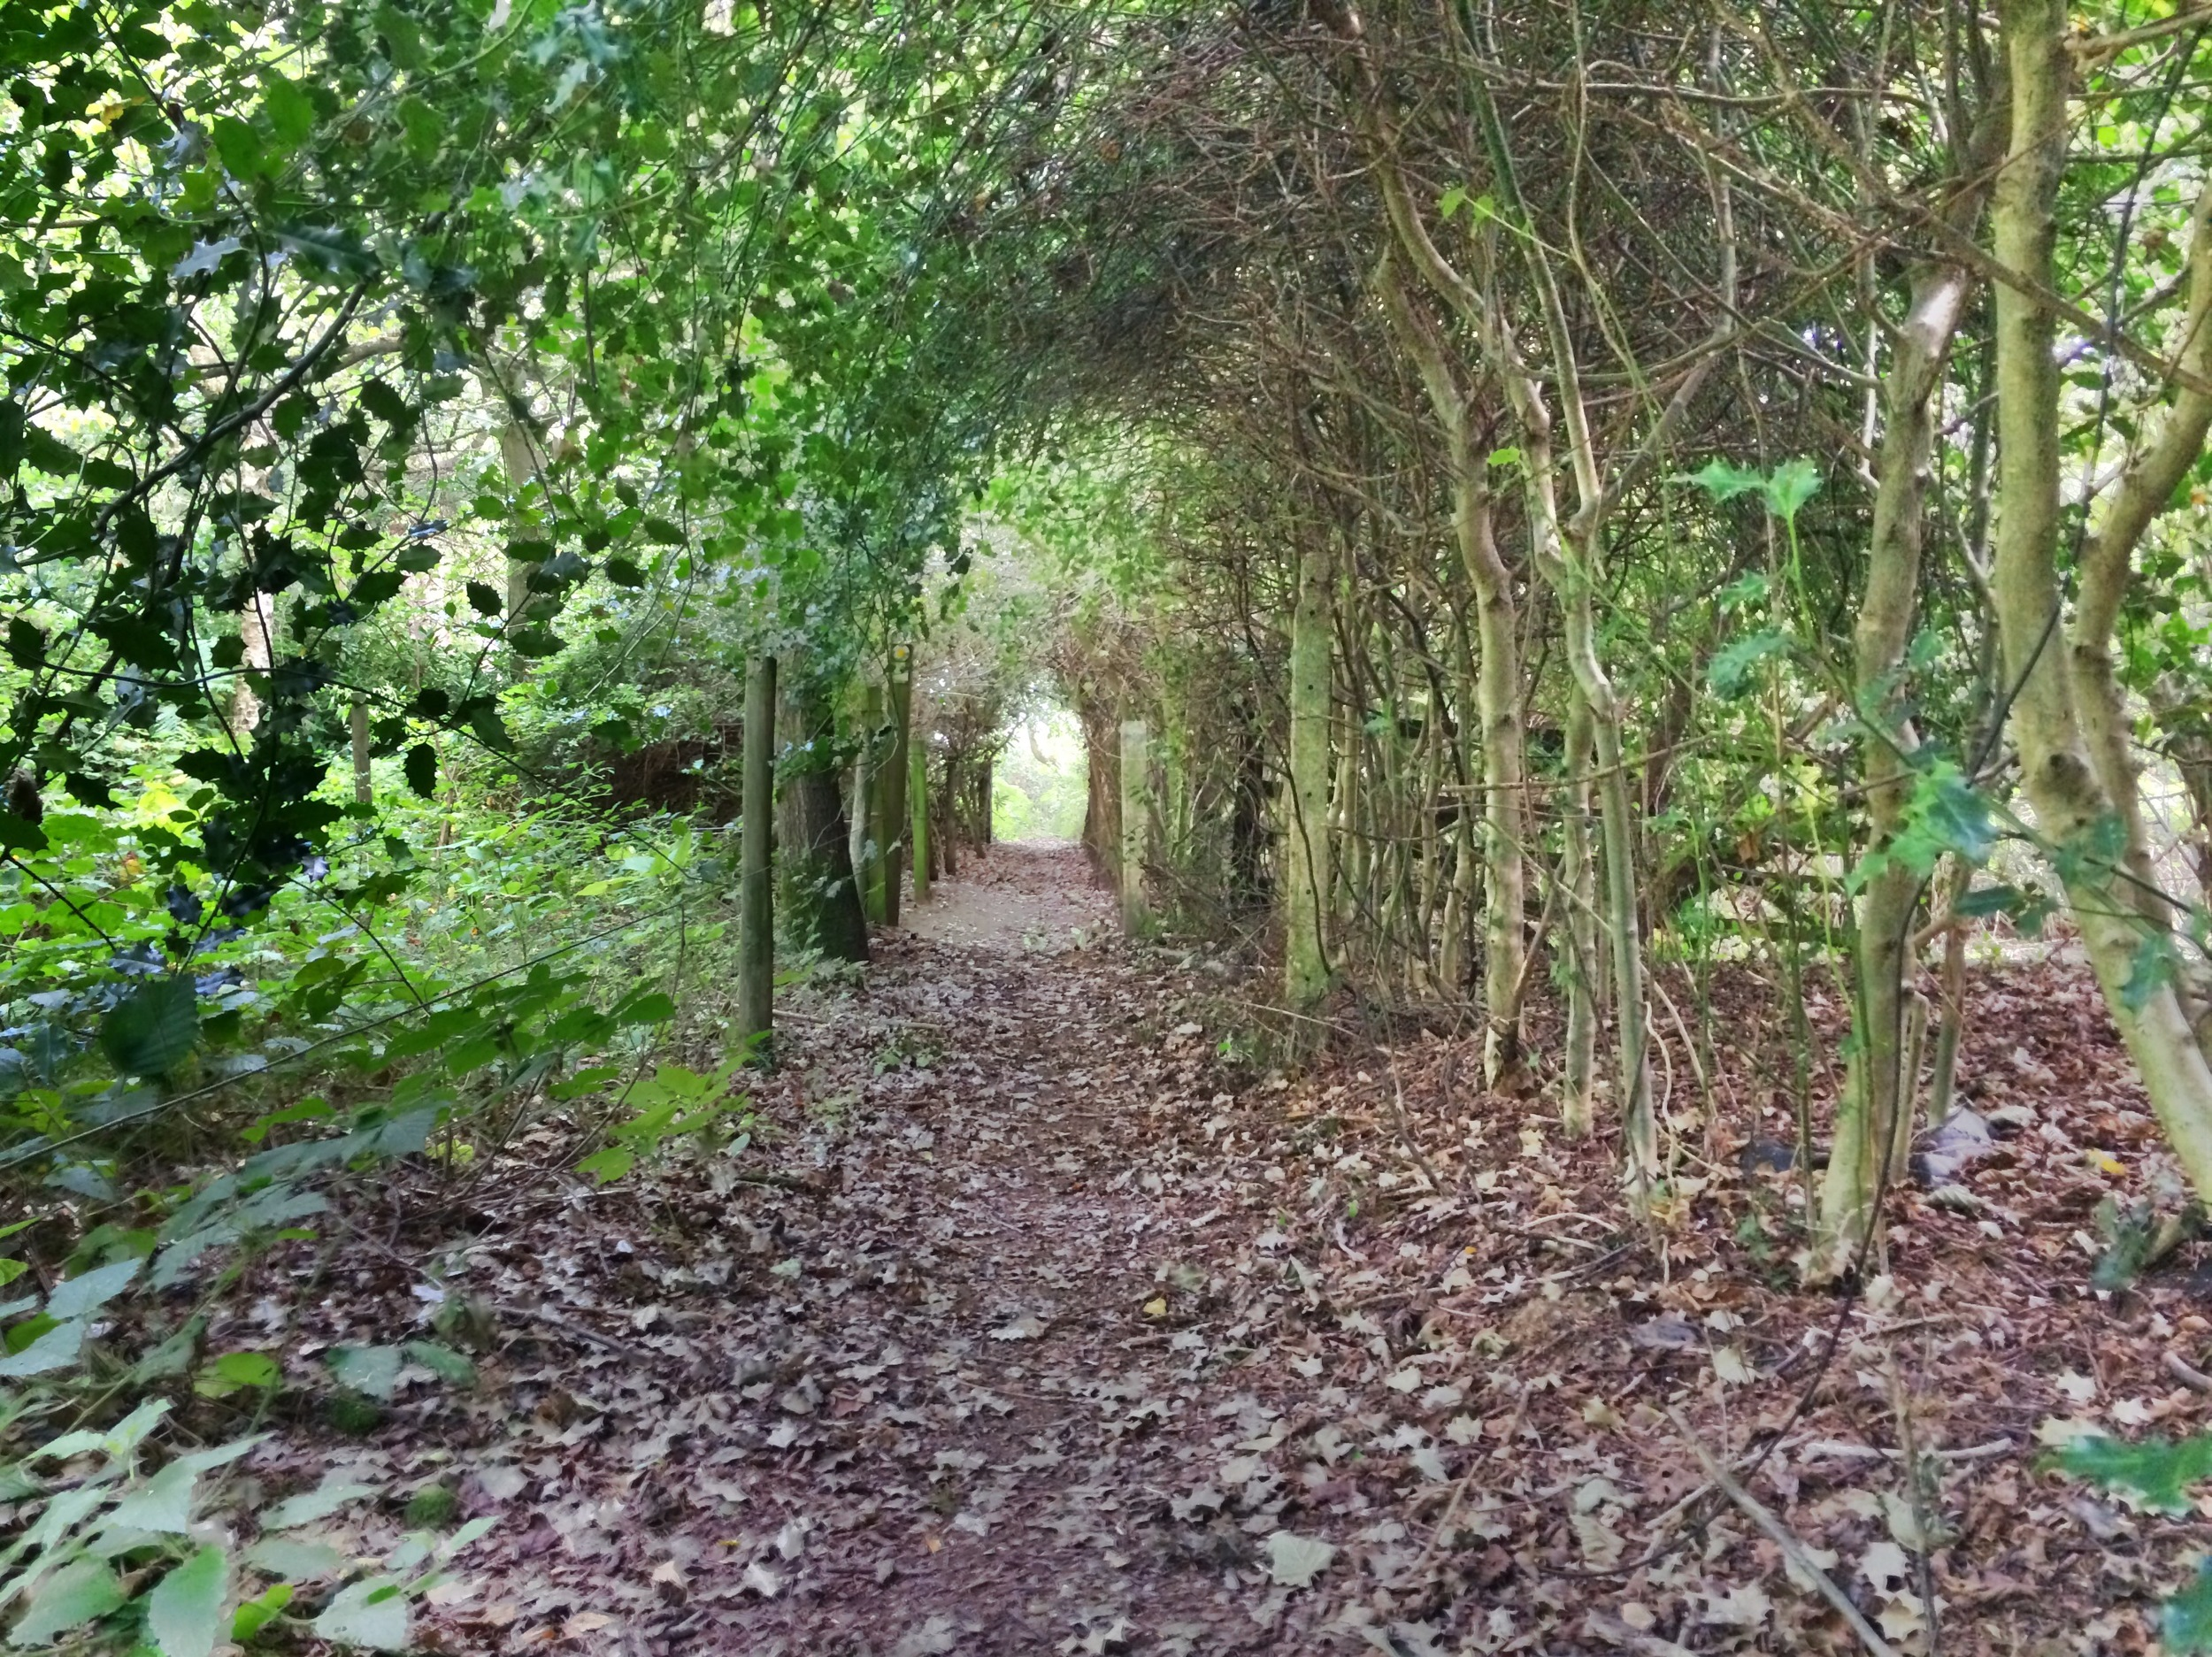 Tim found this beautiful holly tunnel on Boars Hill one day when he was exploring. The English countryside is filled with footpaths.